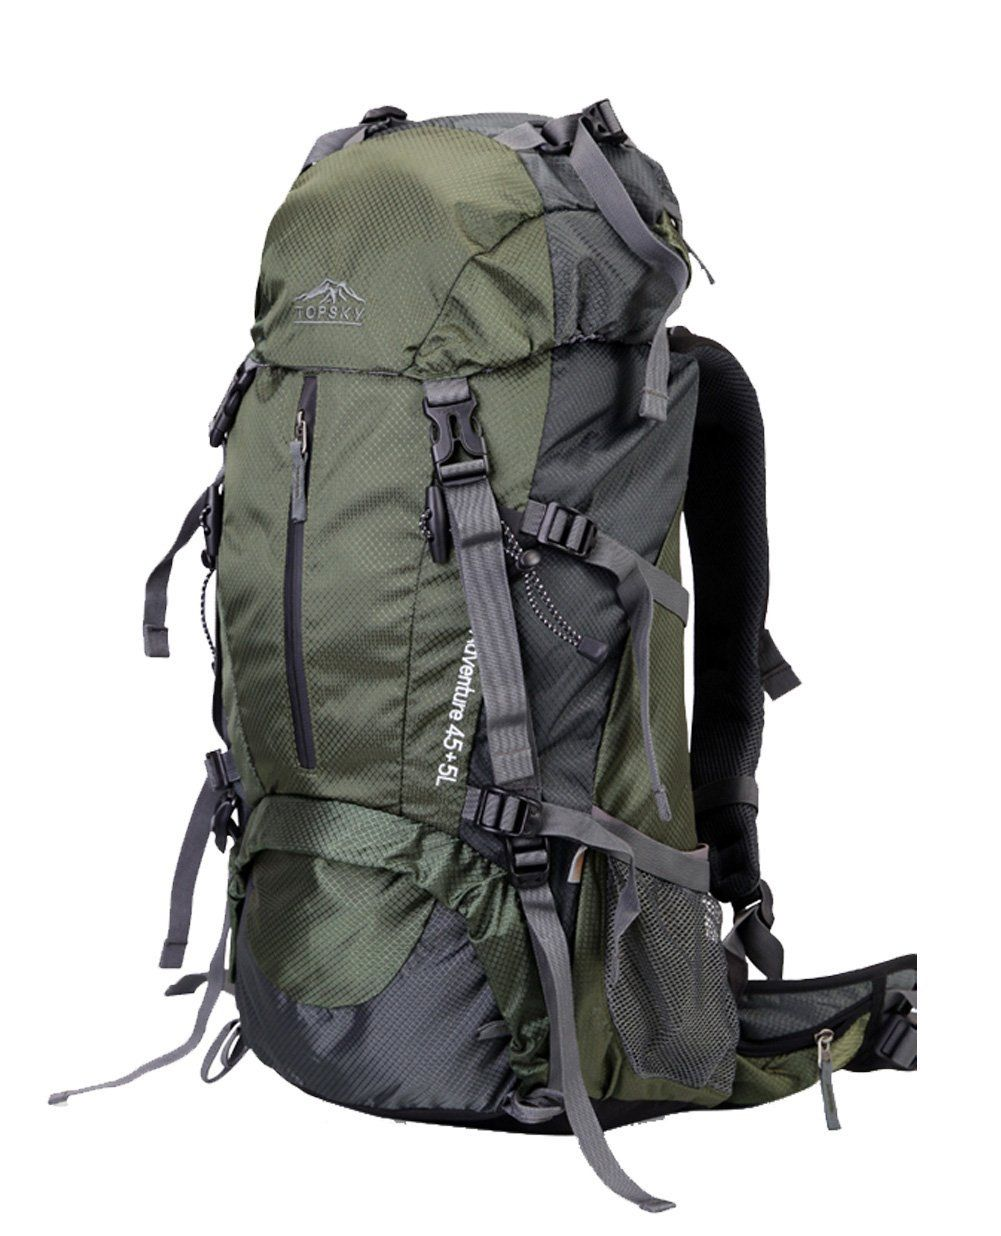 91a7c7e84d Topsky Outdoor Sports Hiking Climbing Backpack Daypacks Waterproof  Professional Mountaineering Bag 30621 Unisex 40L 50L 60L Travel Trekking  Rucksack with ...